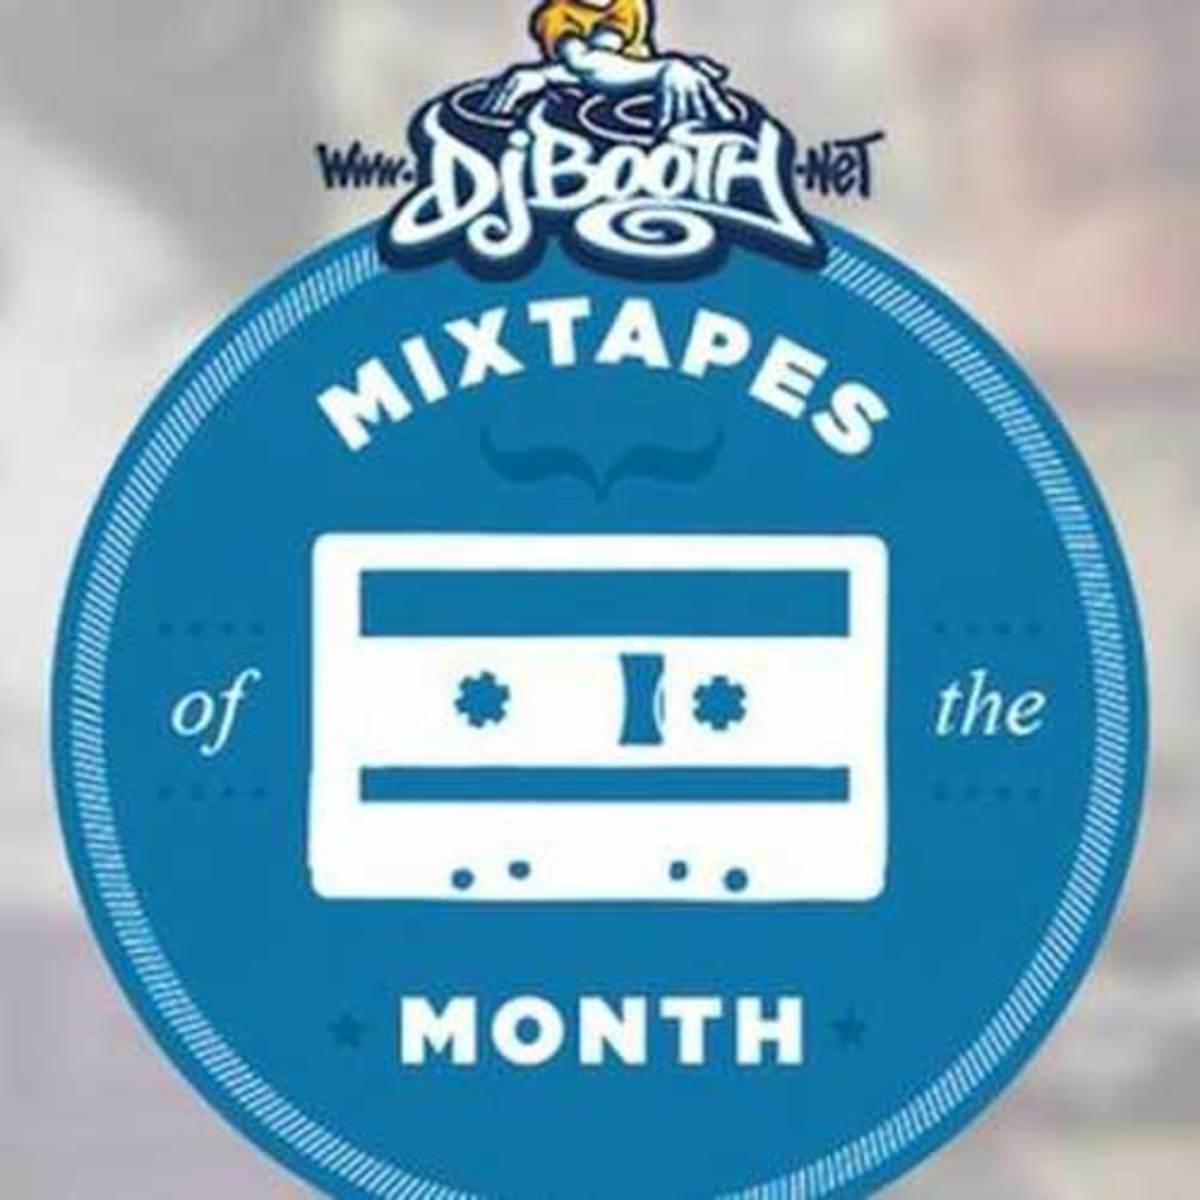 mixtapesofthemonth.jpg